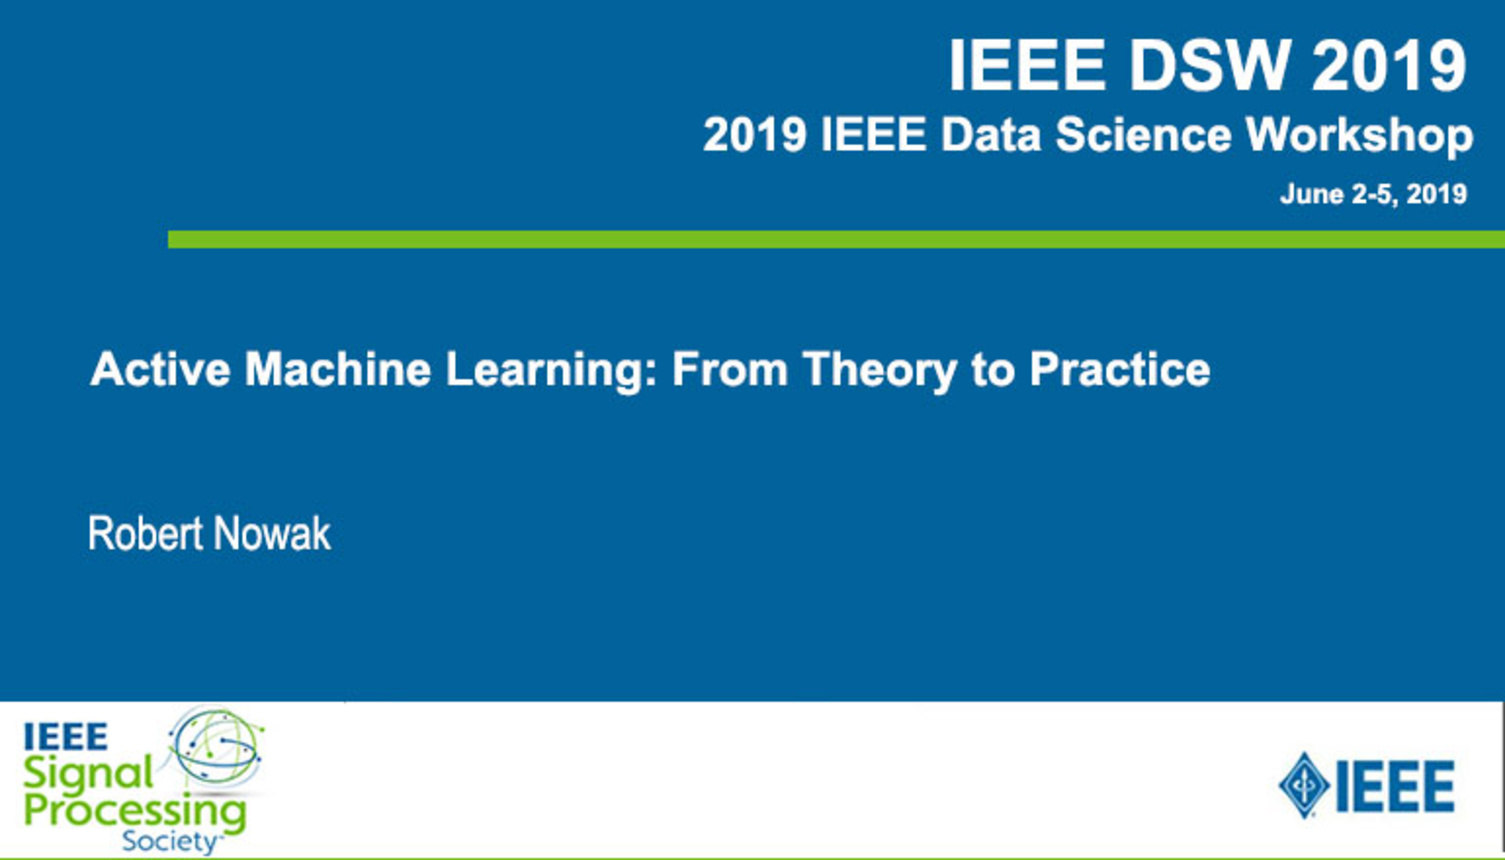 Active Machine Learning: From Theory to Practice